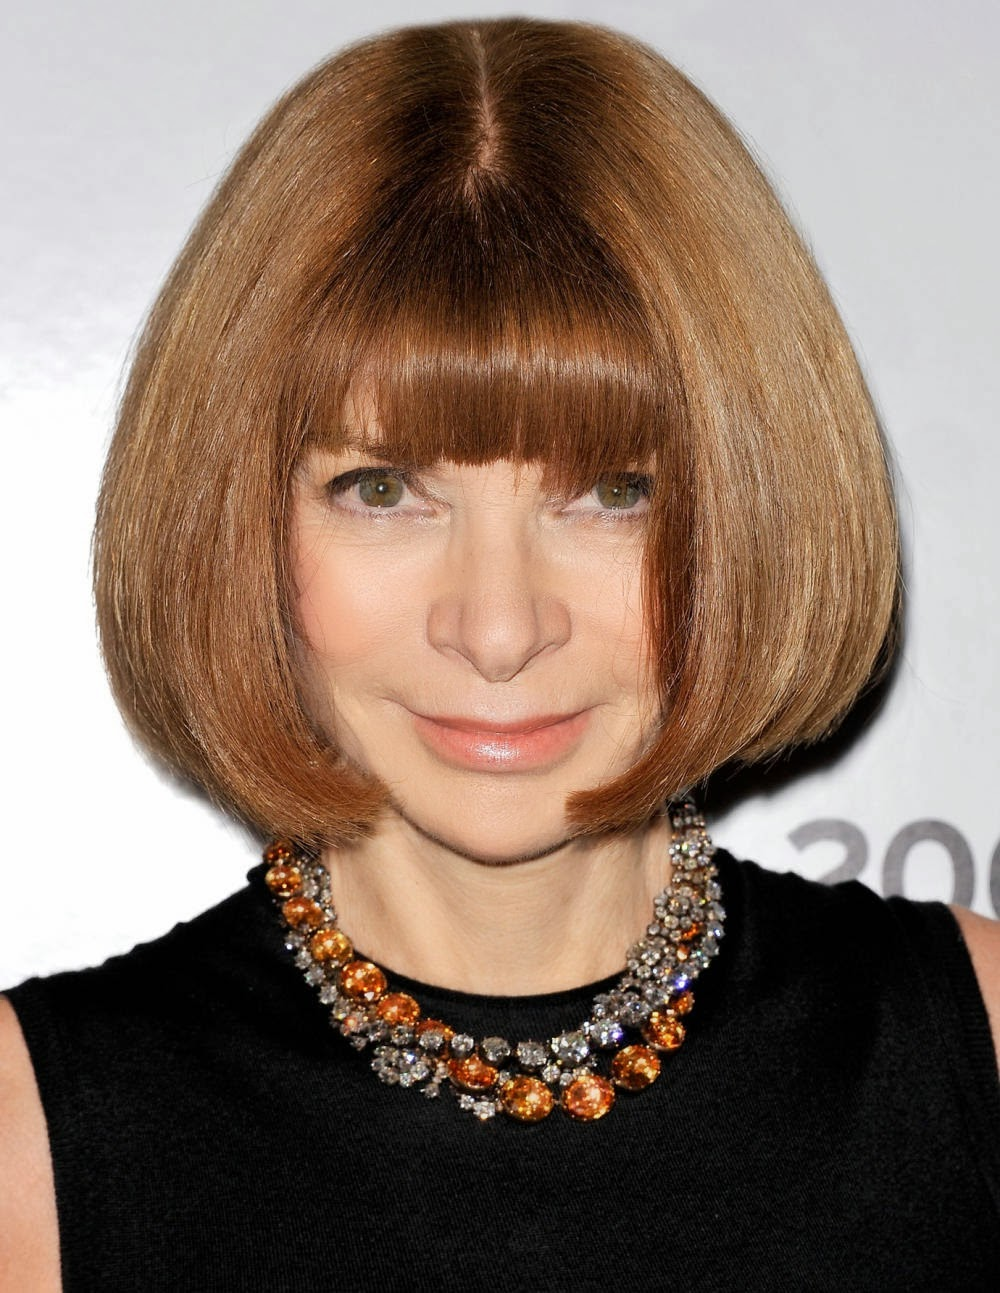 Anna Wintour Banned Ariana Grande From Wearing Ponytail